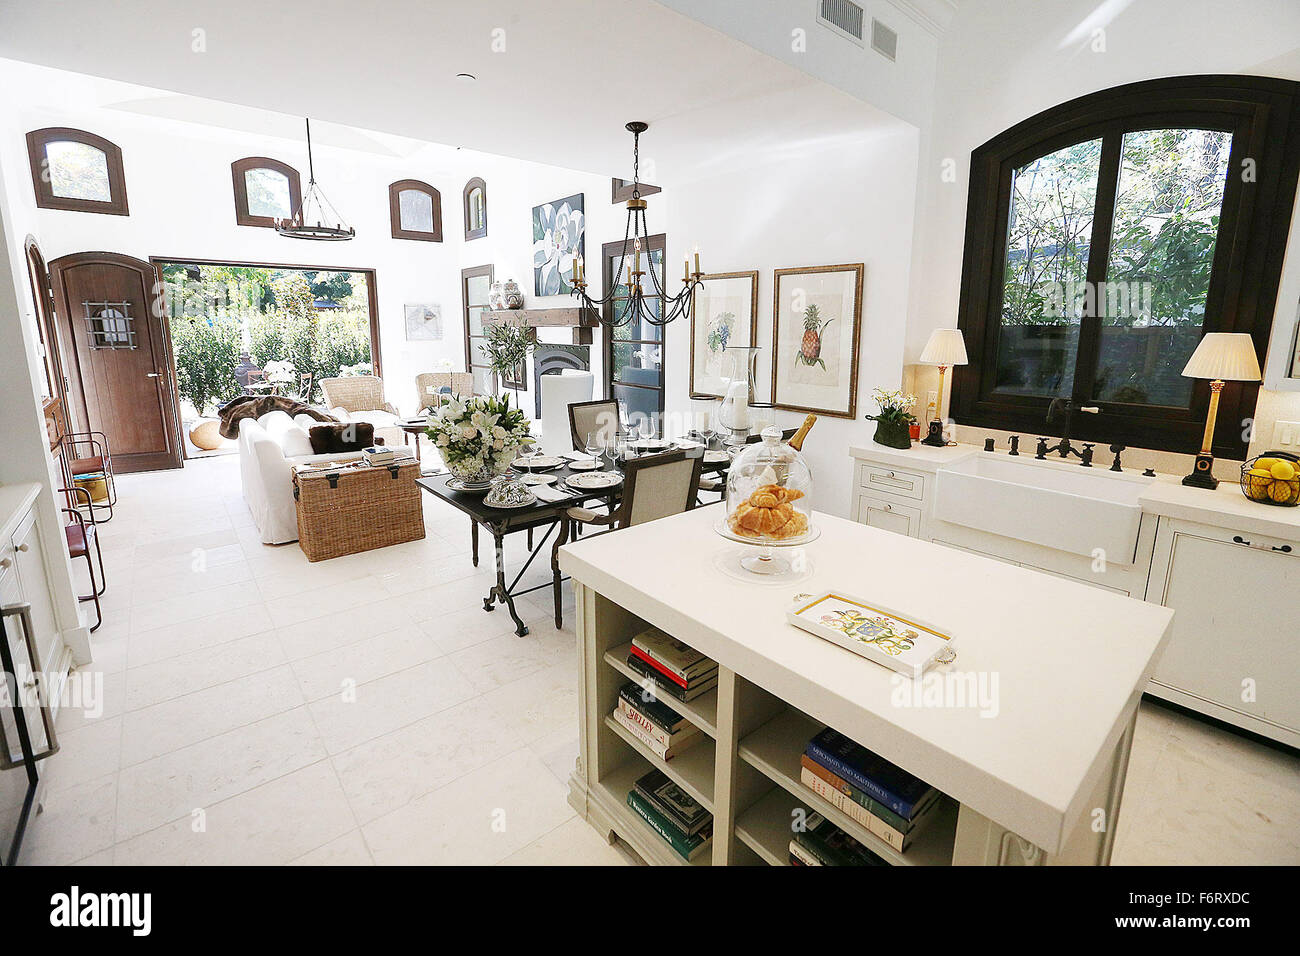 The Kitchen And Living Room Of Italian Farmhouse Style Home Decorated By Thomas Bartlett In St Helena C Napa Valley Register ZUMA Wire Alamy Live News